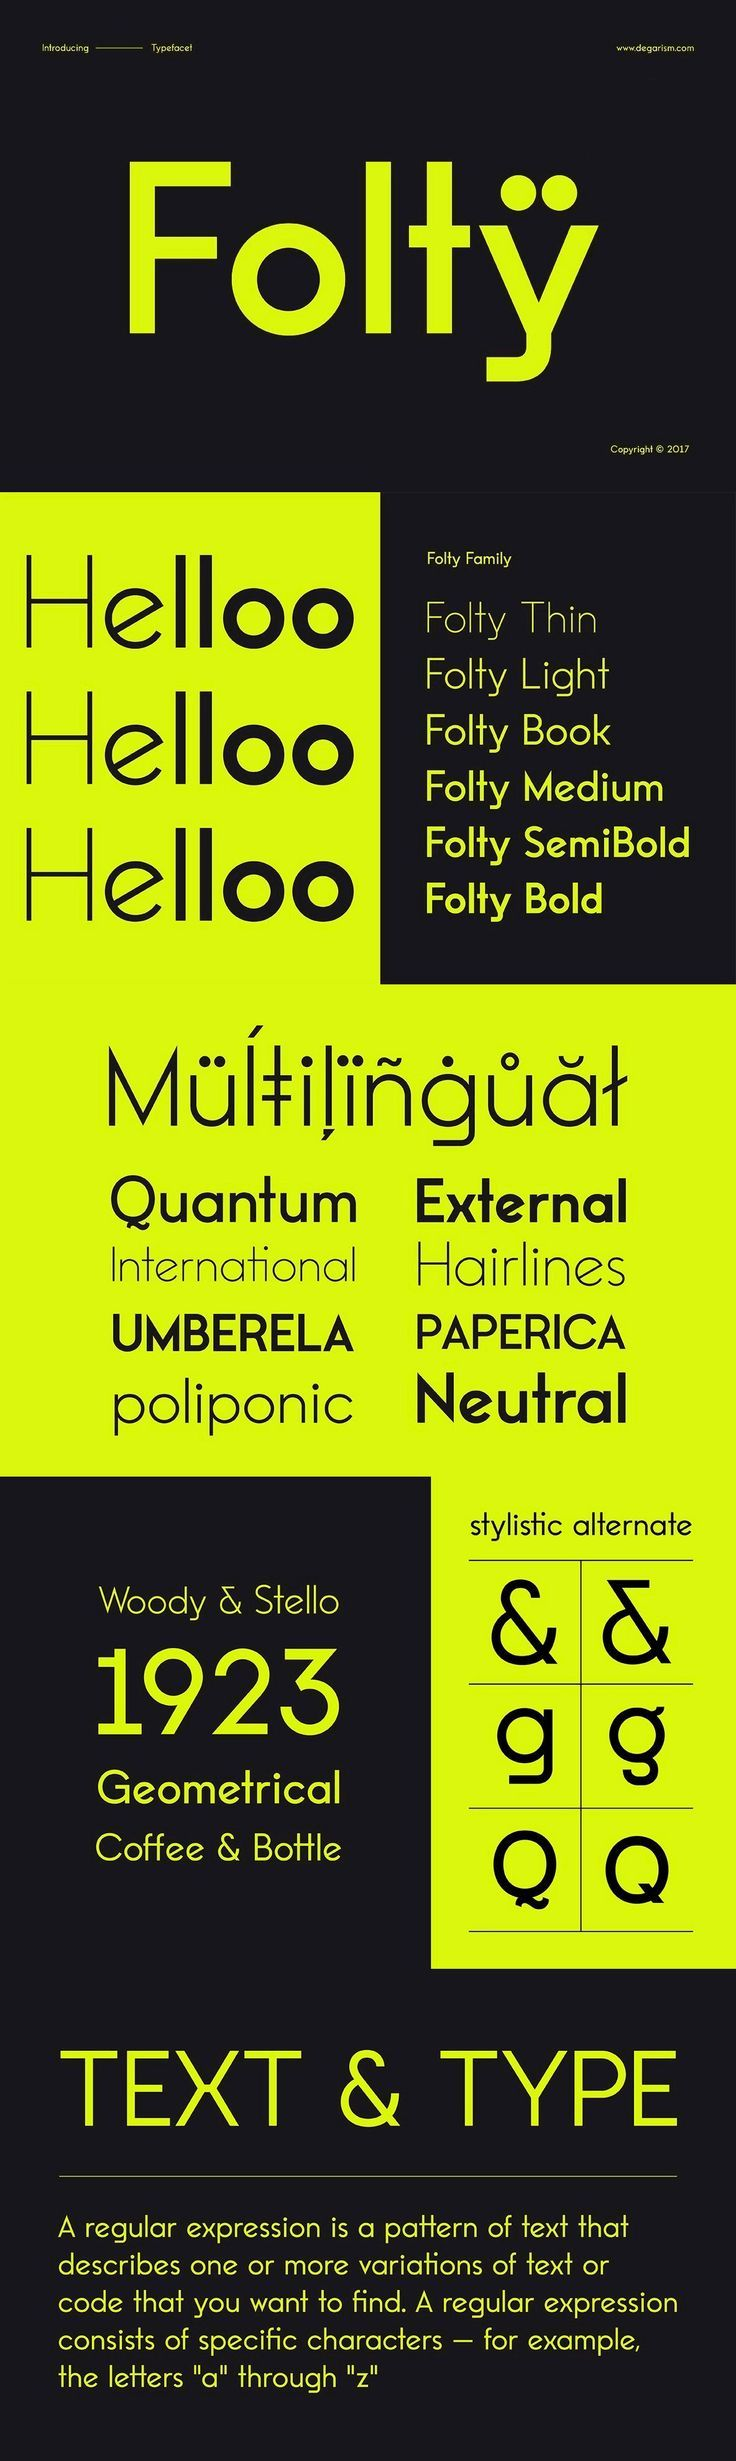 Folty - Folty is a geometric sans serif design that was inspired by modern graphic design and contemporary ...                        #font #typeface #typegang #typespire #typematters #type #fontdesign #typography #graphicdesign #typographyinspire #handmadefont #youworkforthem #ad #sansserif